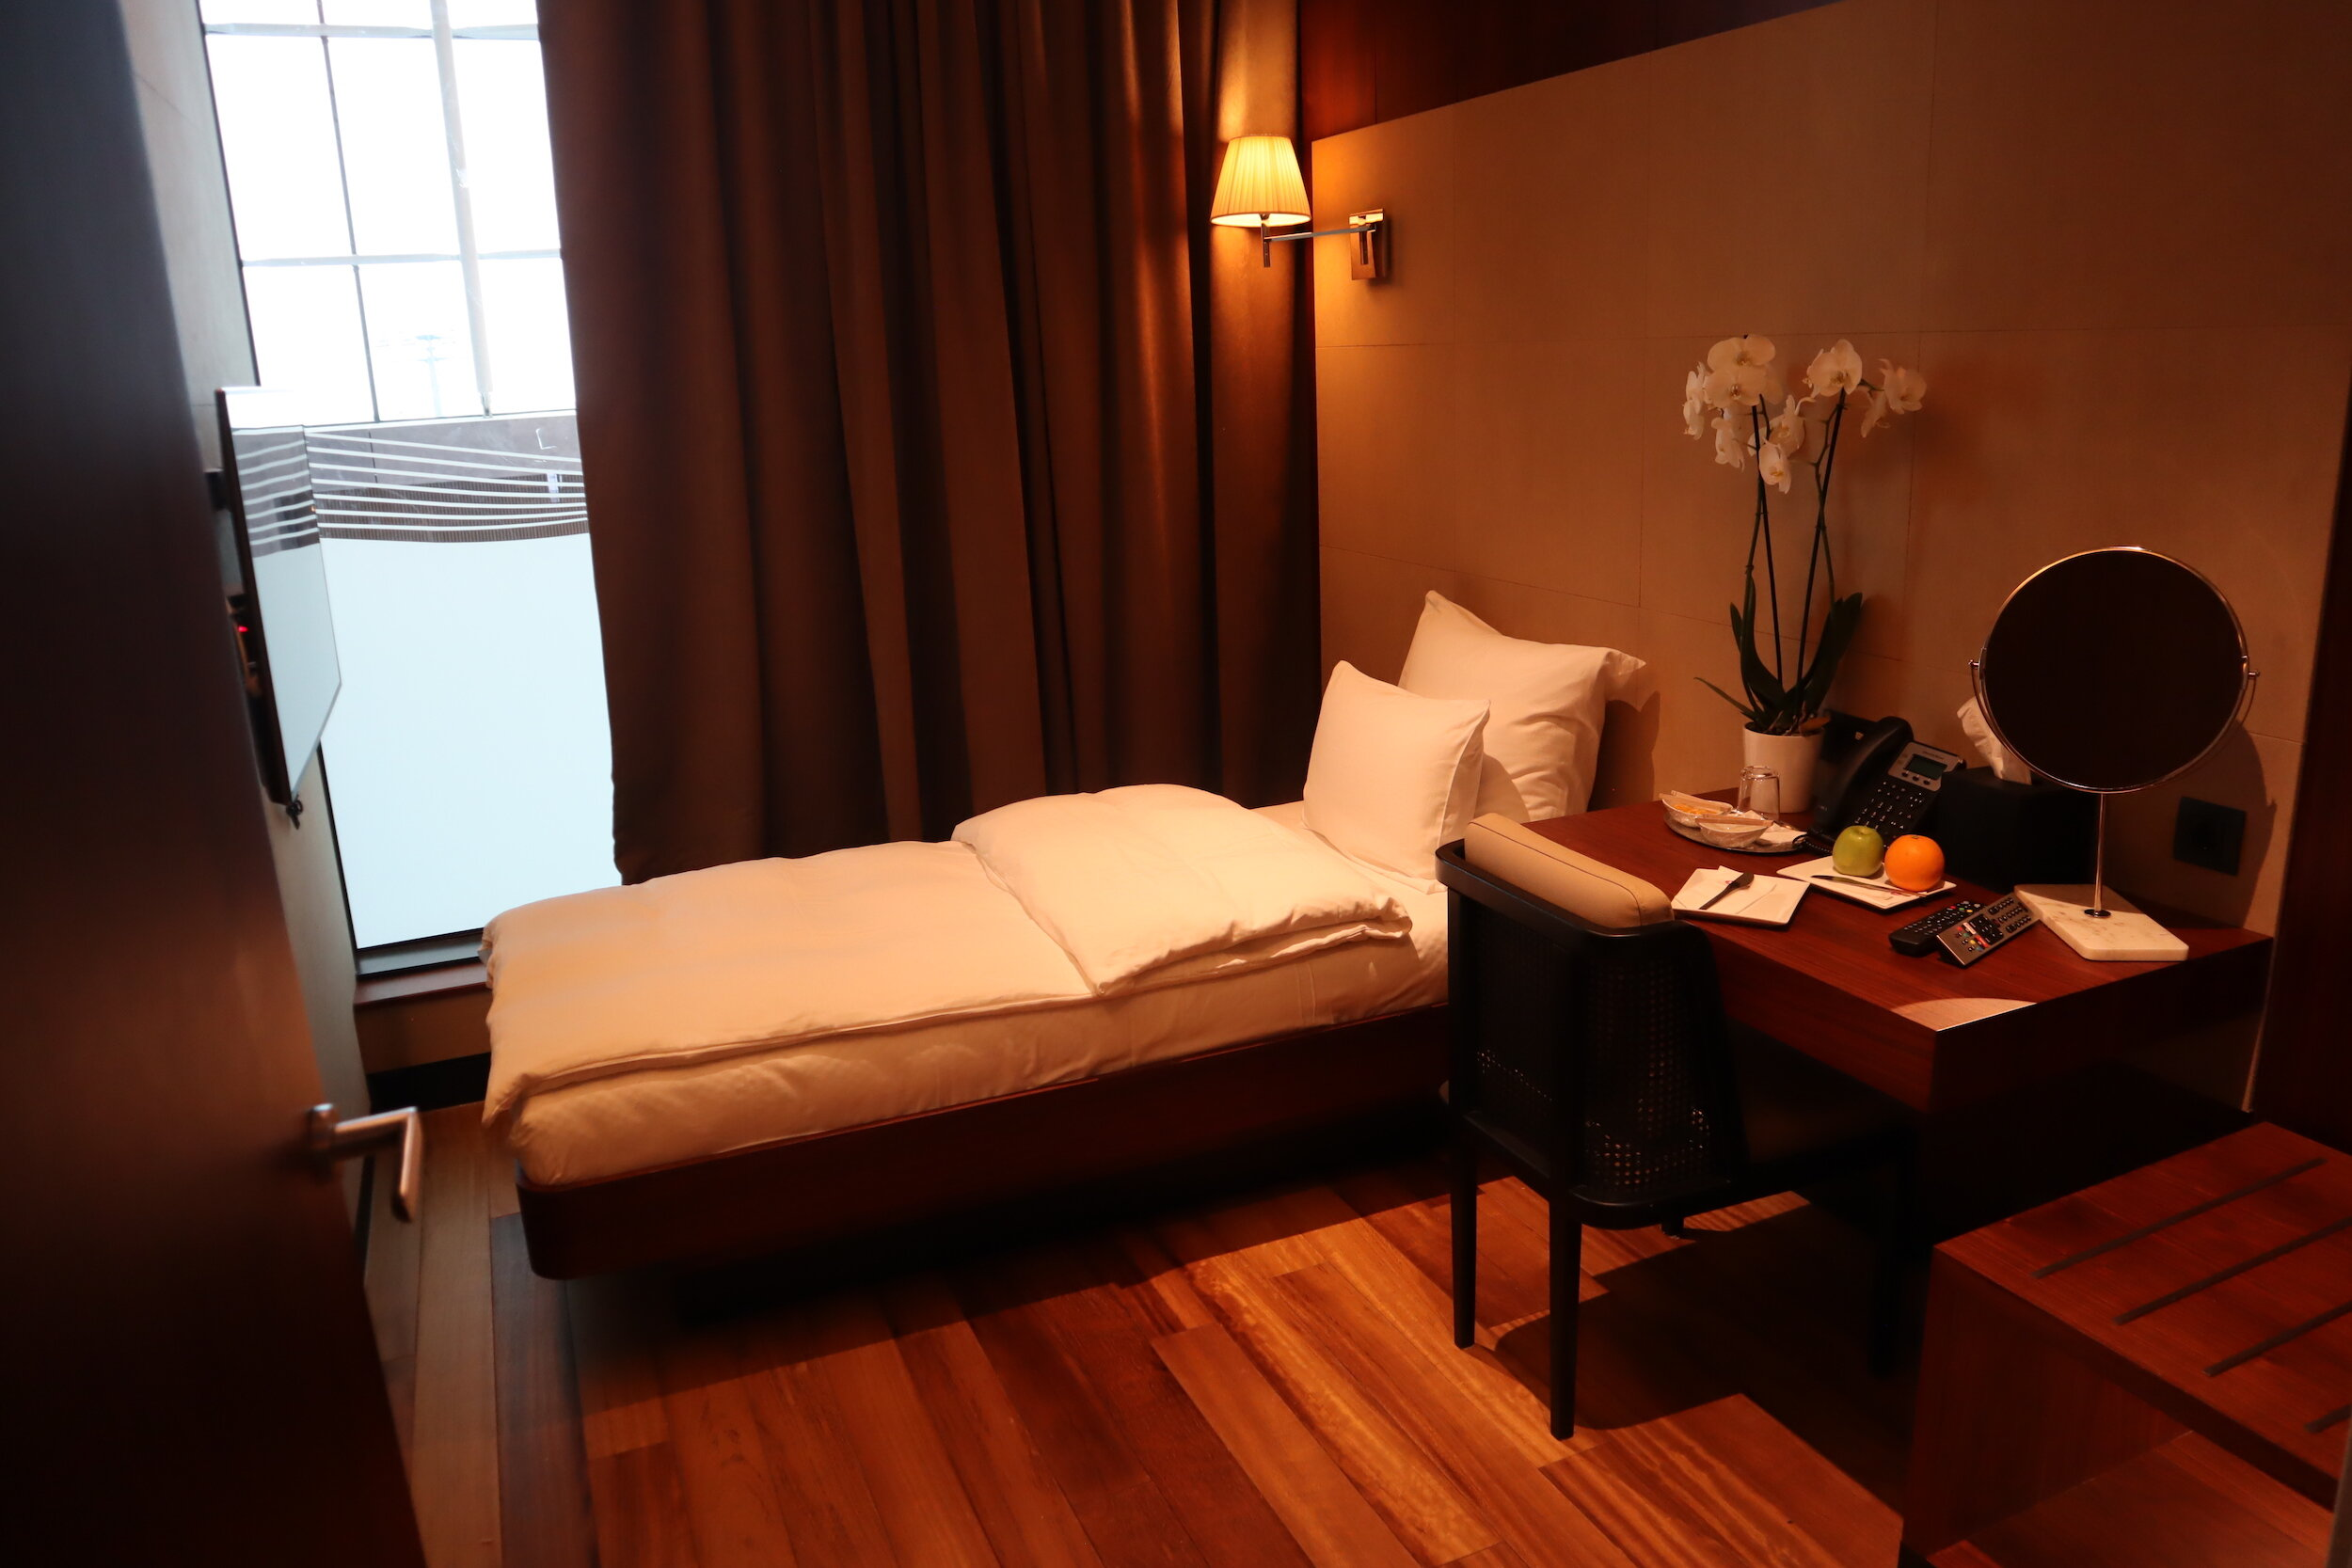 Turkish Airlines Business Lounge Istanbul – Private sleeping room